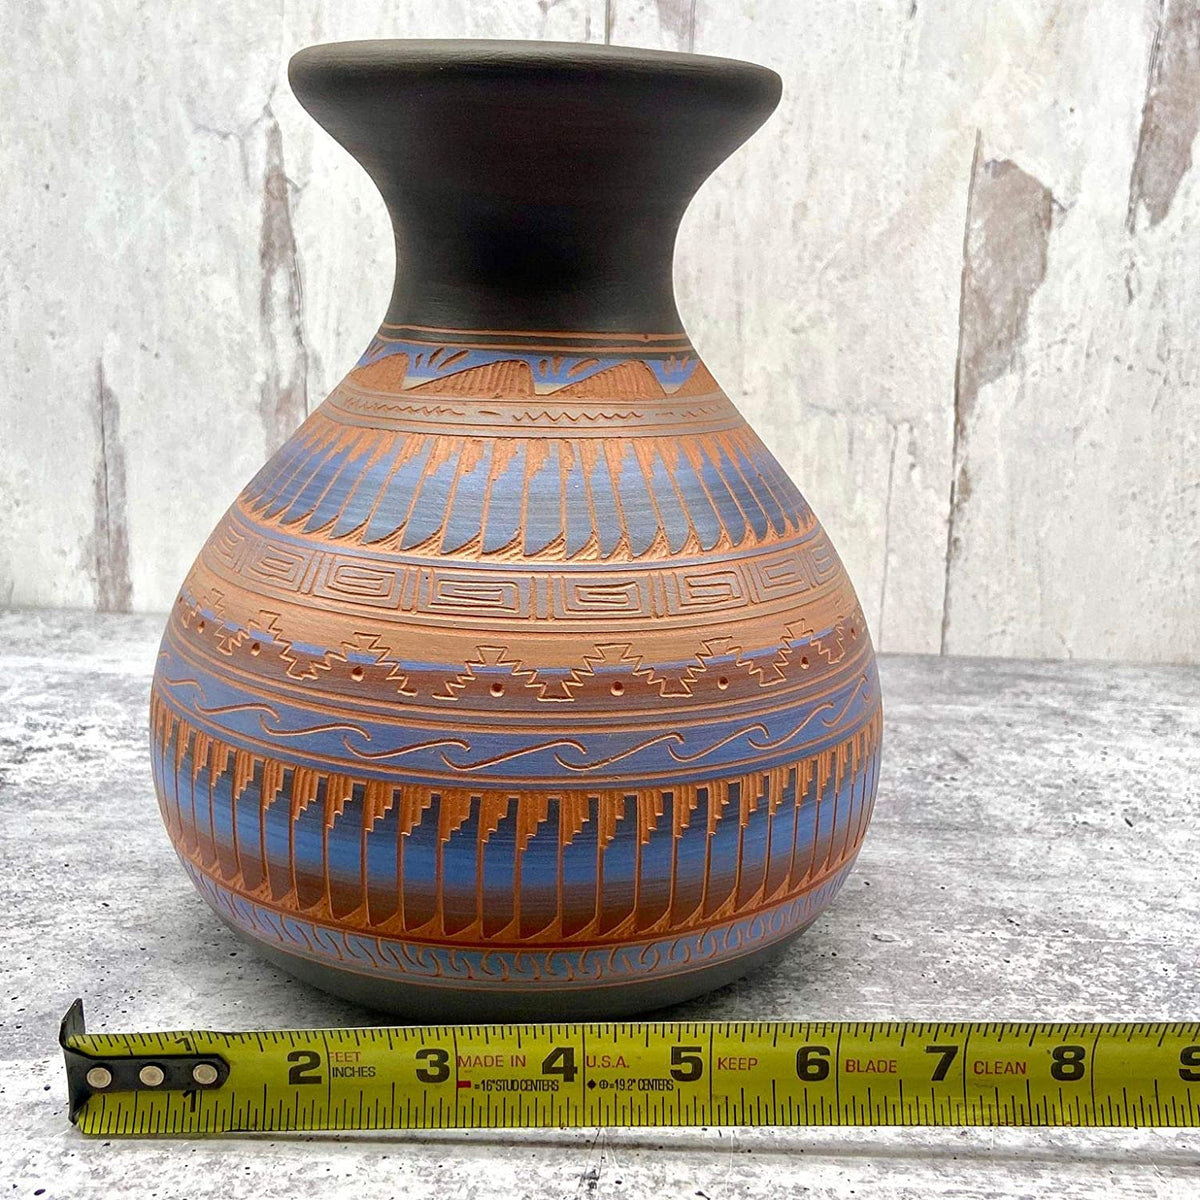 Authentic Native American Pottery, Traditional Vase Style, Genuine Navajo Tribe USA Handpainted and Etched, Artist Signed, Southwestern Home Decor Collectible